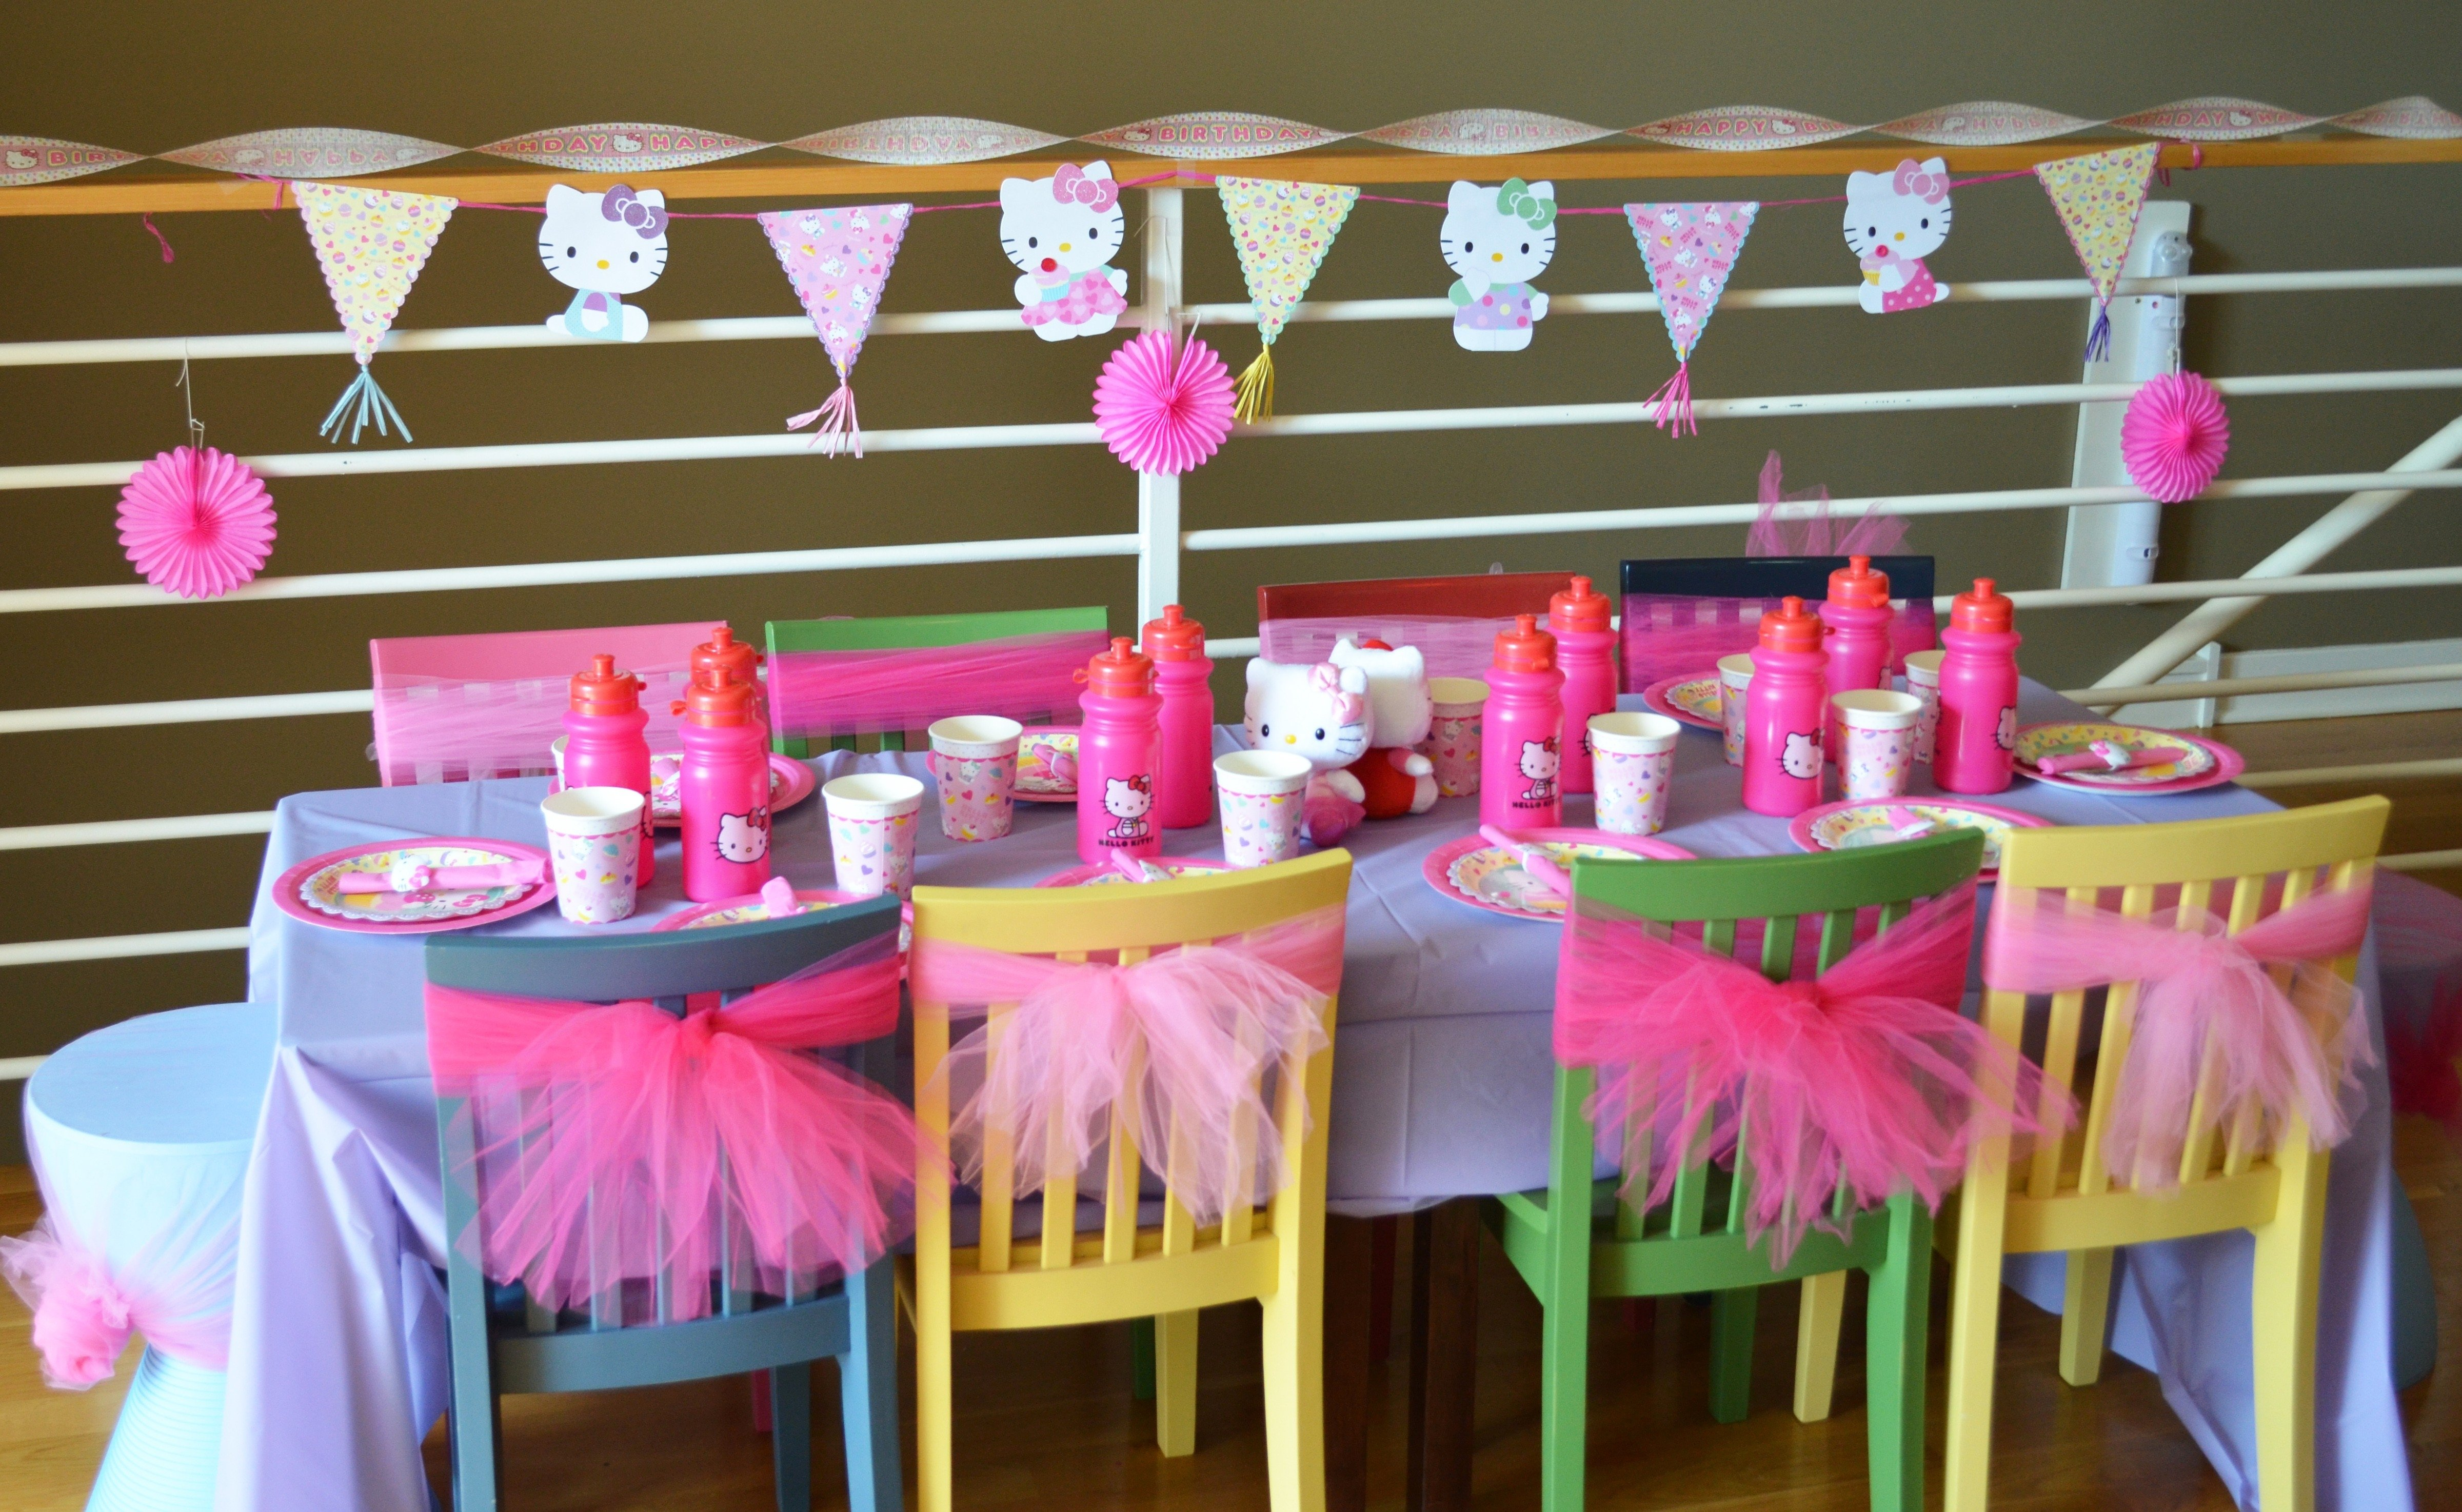 10 Stylish Birthday Party Ideas For A 3 Year Old 27 cute models regarding 3 year old birthday party that you shouldn 5 2021